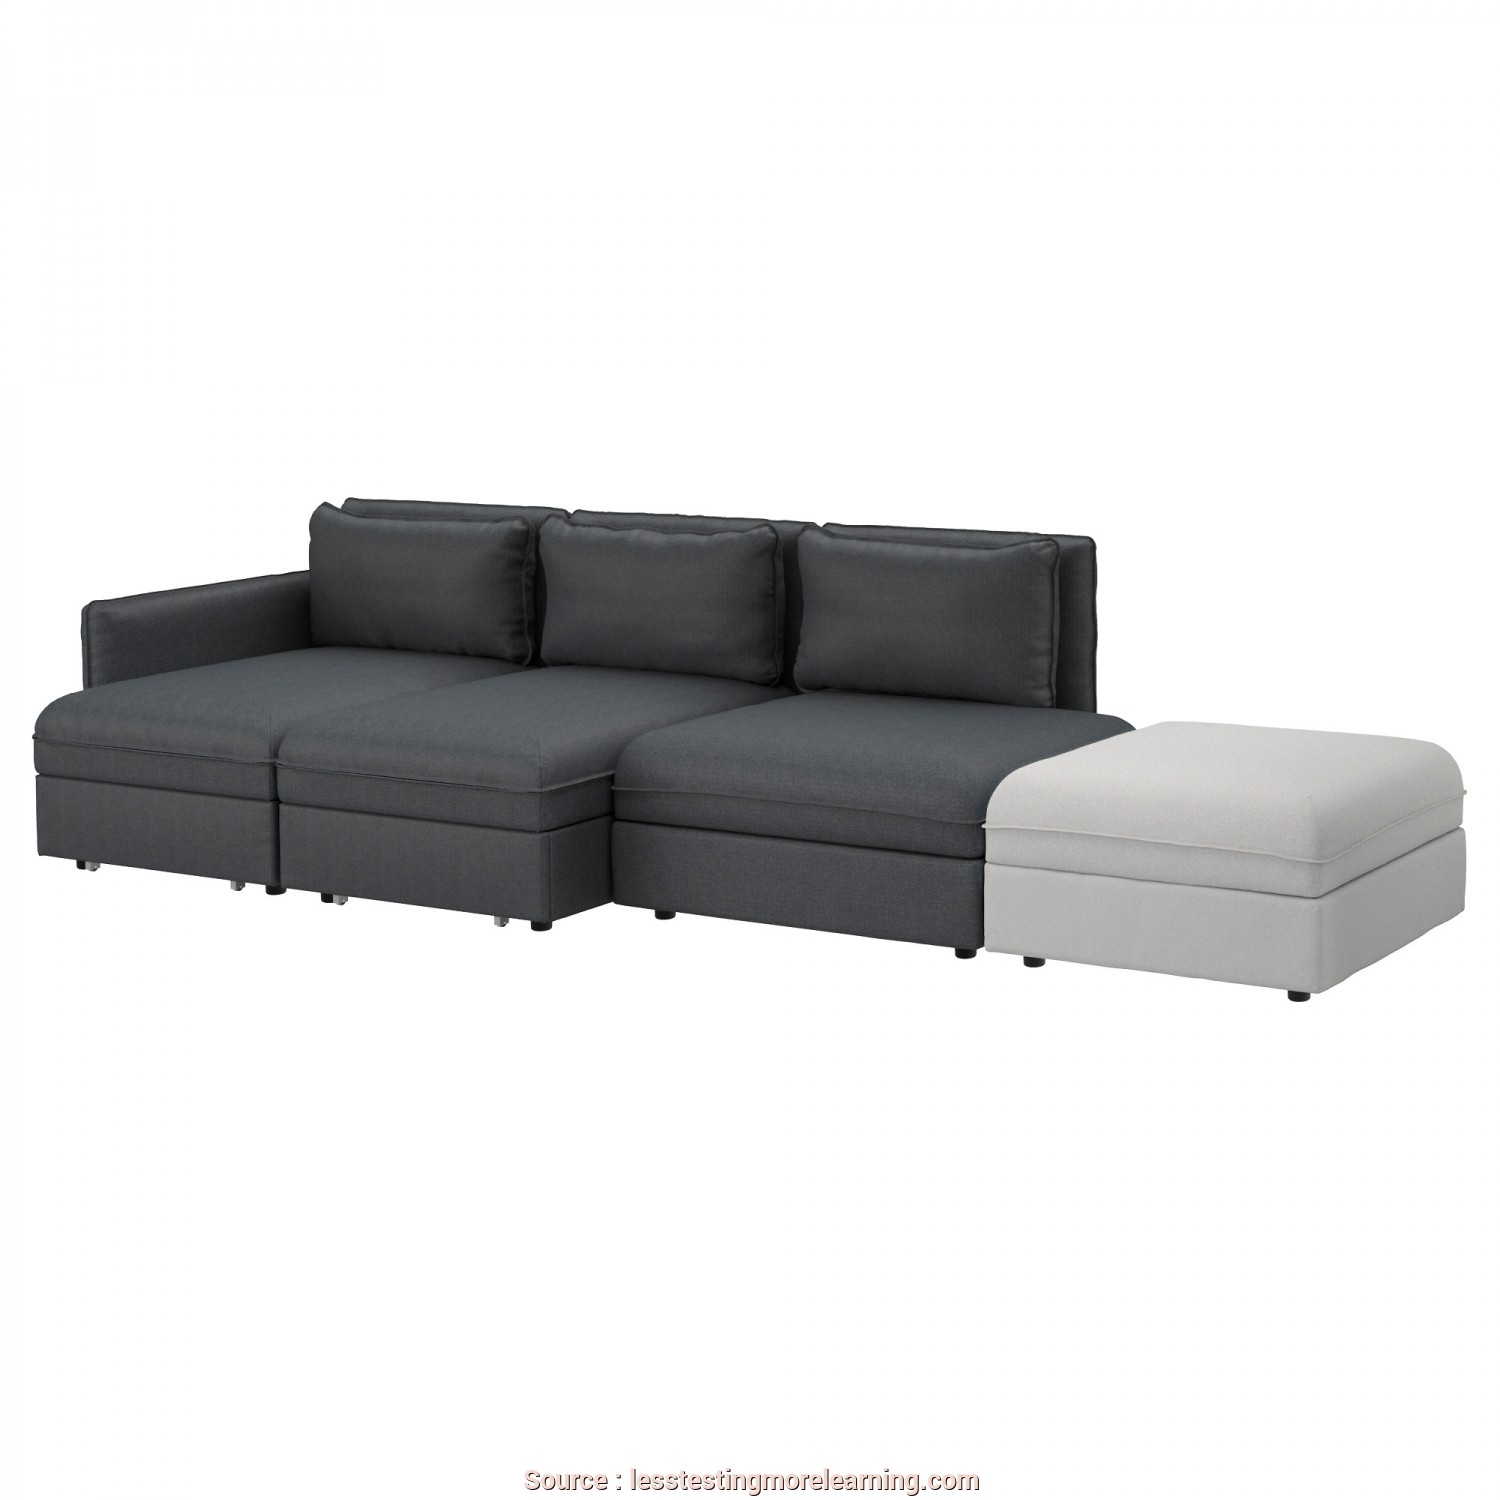 Leather Futon Ikea, Ideale Furniture: Sleeper Chair Ikea With Different Styles, Fabrics To